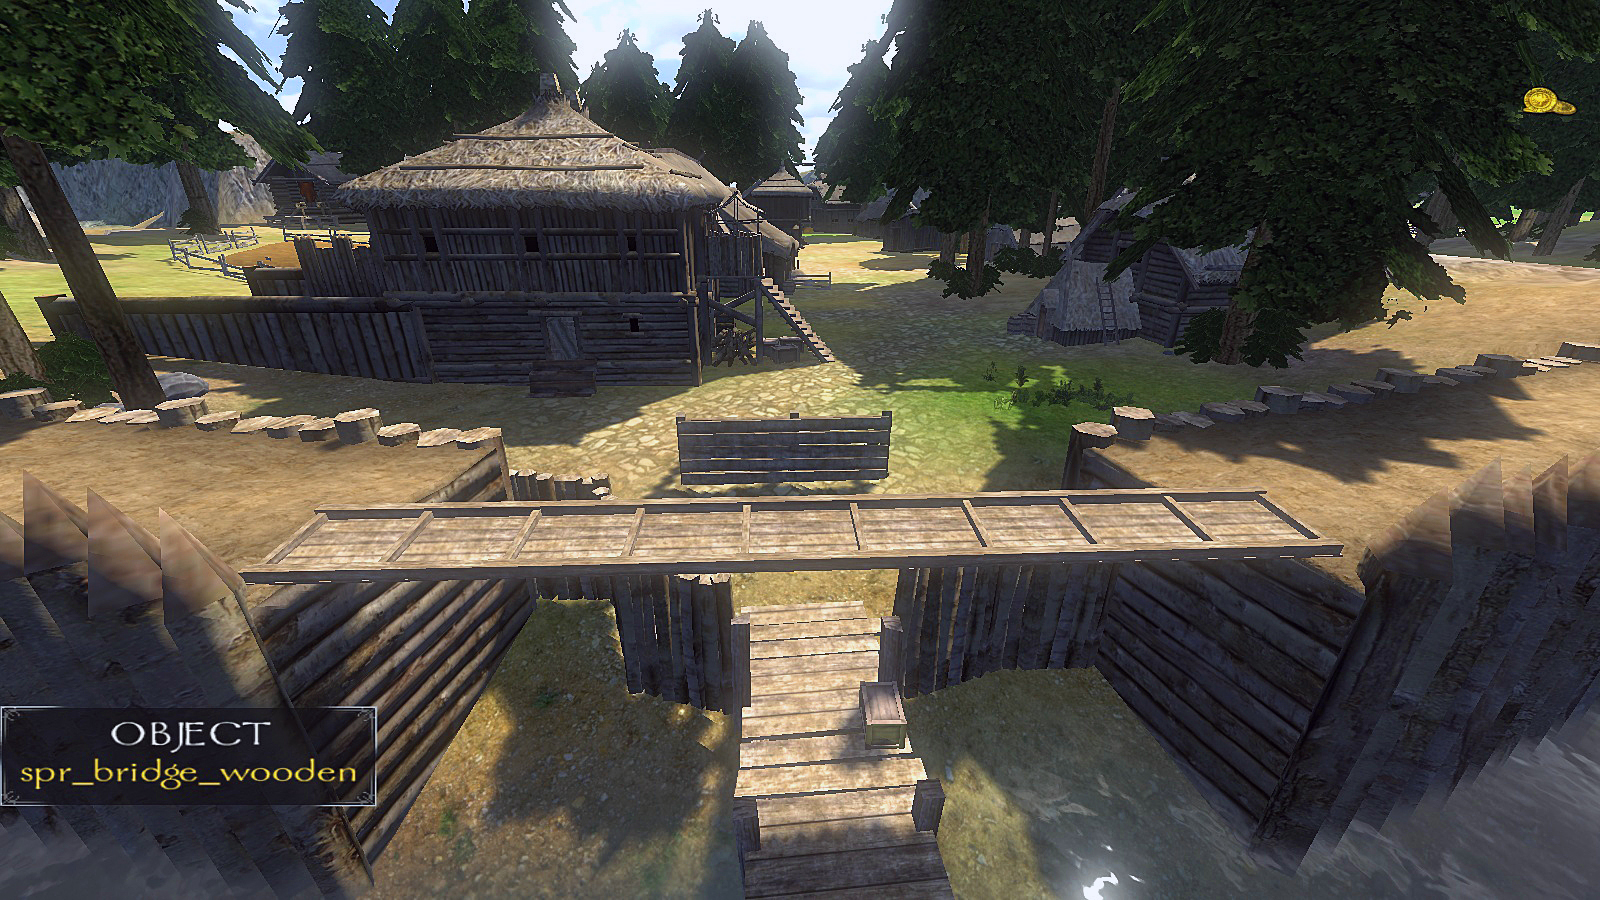 Map image persistent frontier mod for mount blade warband mod db add media report rss map view original gumiabroncs Choice Image